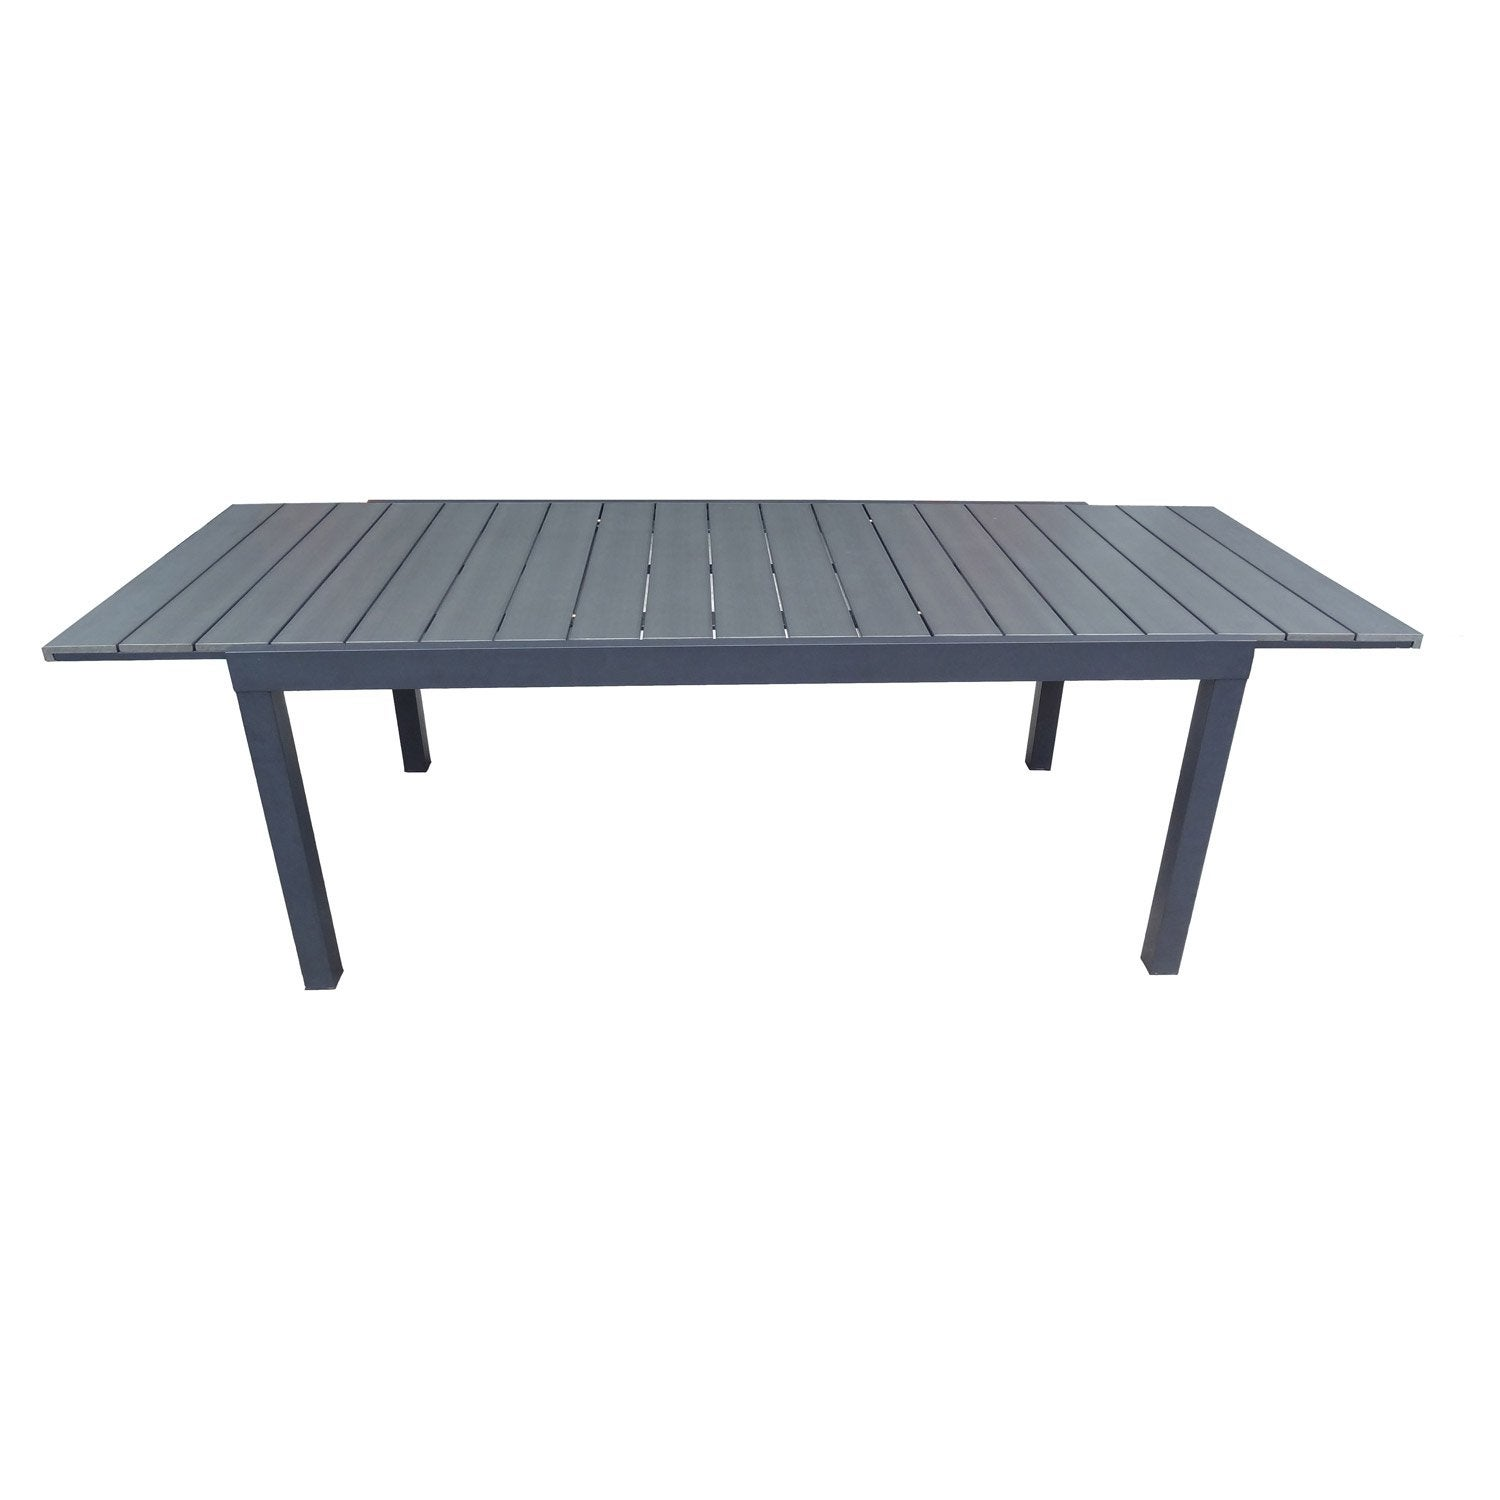 Table de jardin naterial pratt rectangulaire gris leroy - Table roulante de jardin ...